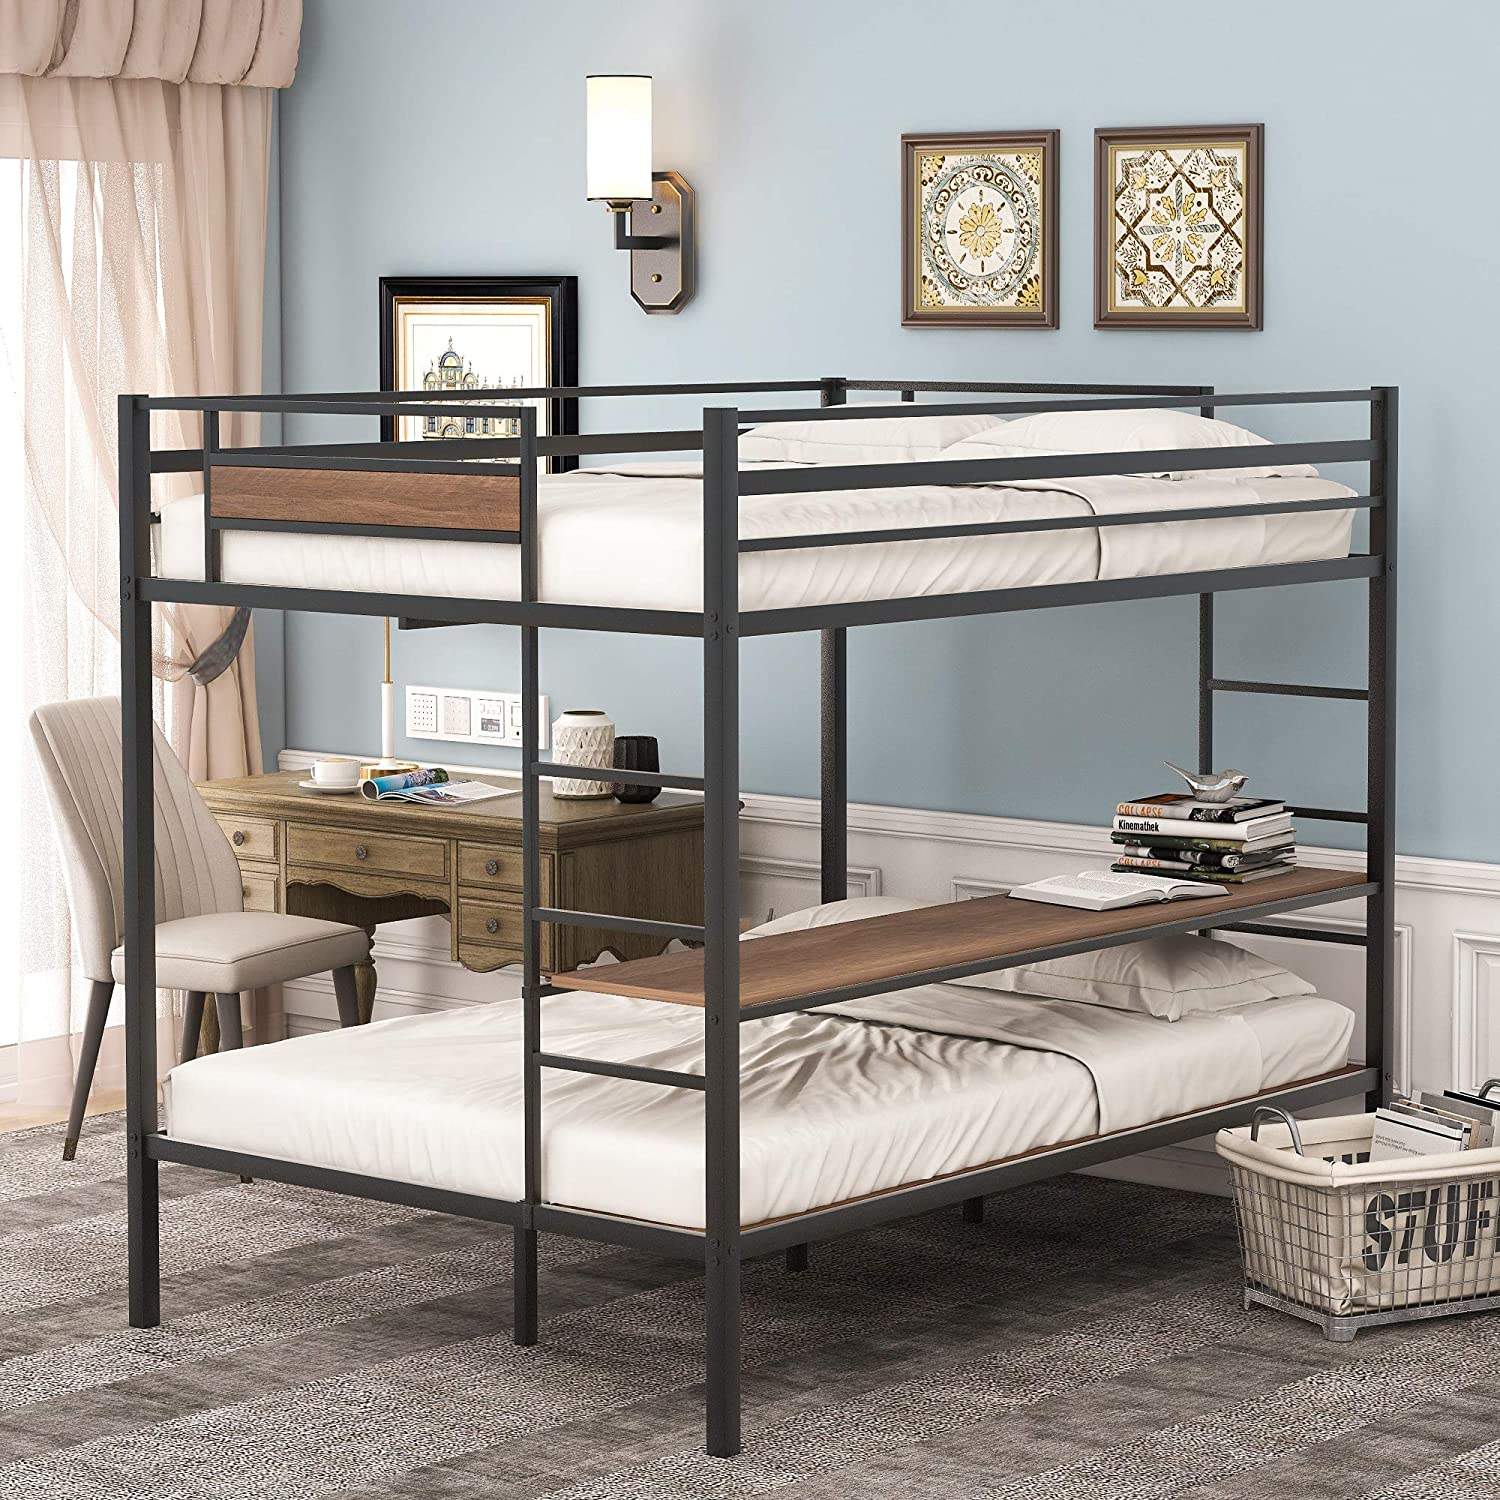 Buy Metal Bunk Bed Full Over Full Twin Bunk Bed Frame Heavy Duty Space Saving Design Easy Assembly With Safety Guard Rails Side Ladder For Adults Children Teens Full Over Twin Full Online In Vietnam B096jy1htr